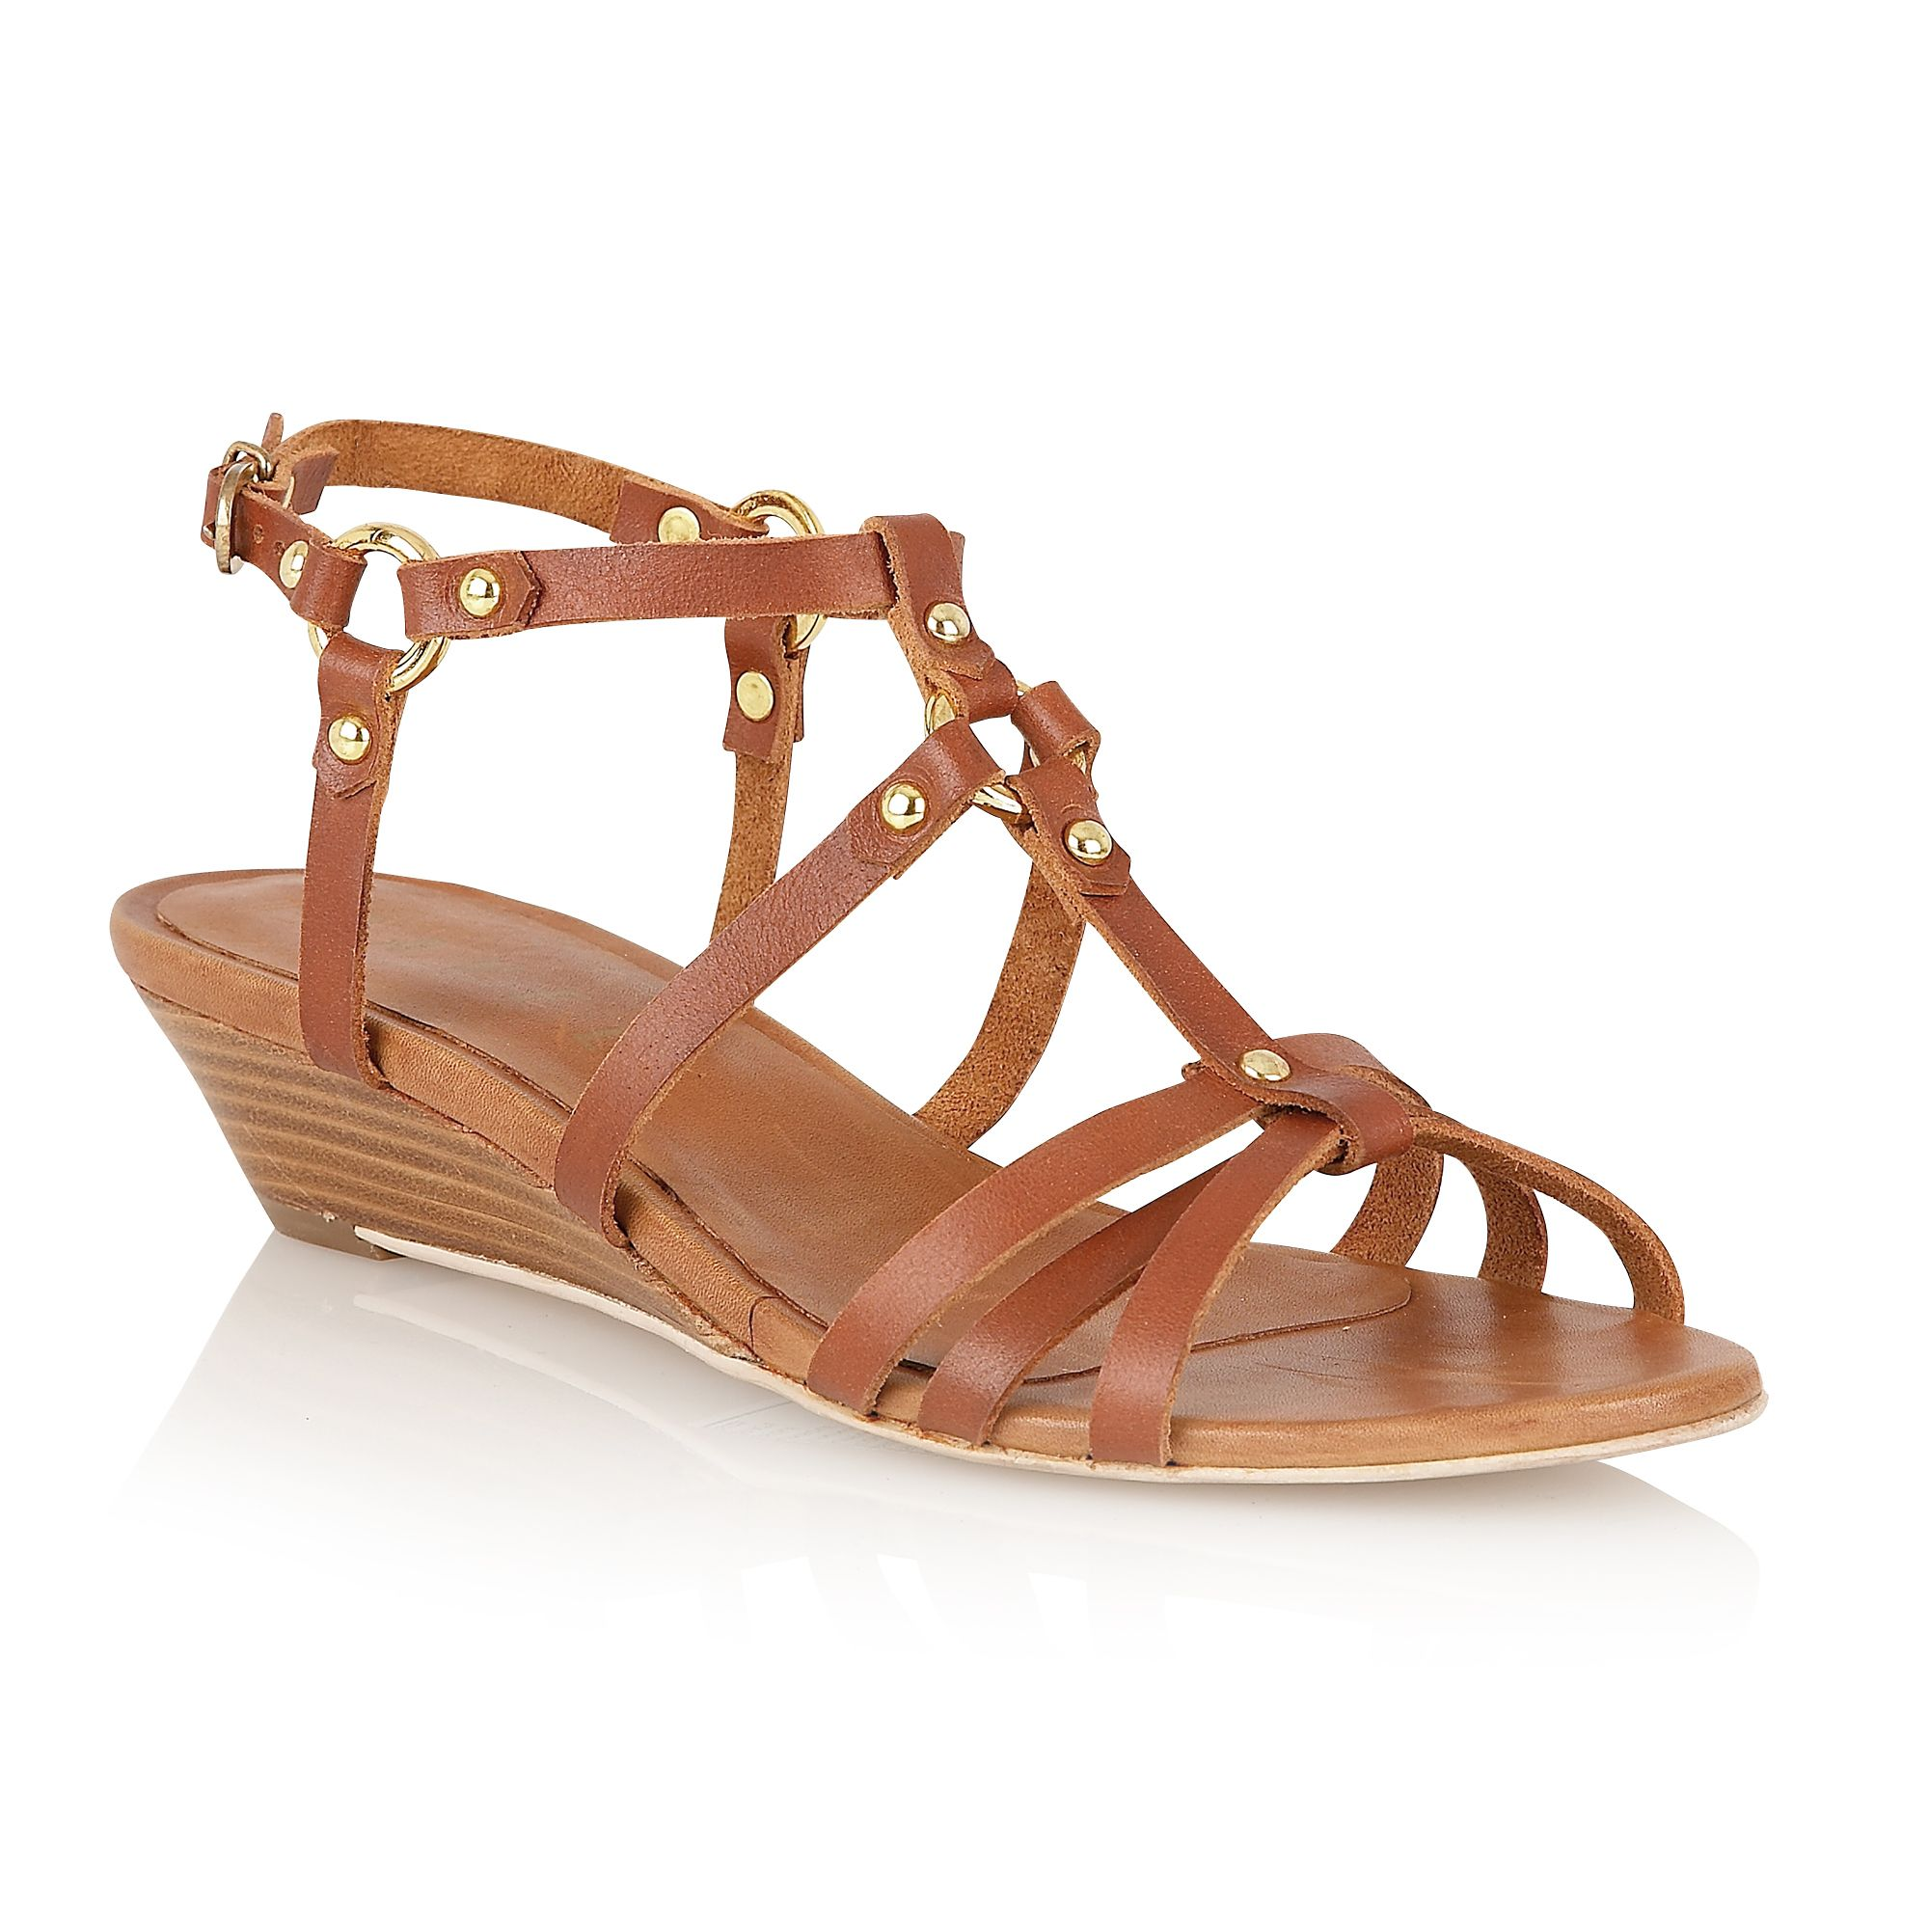 Dahlia leather open toe buckle sandals